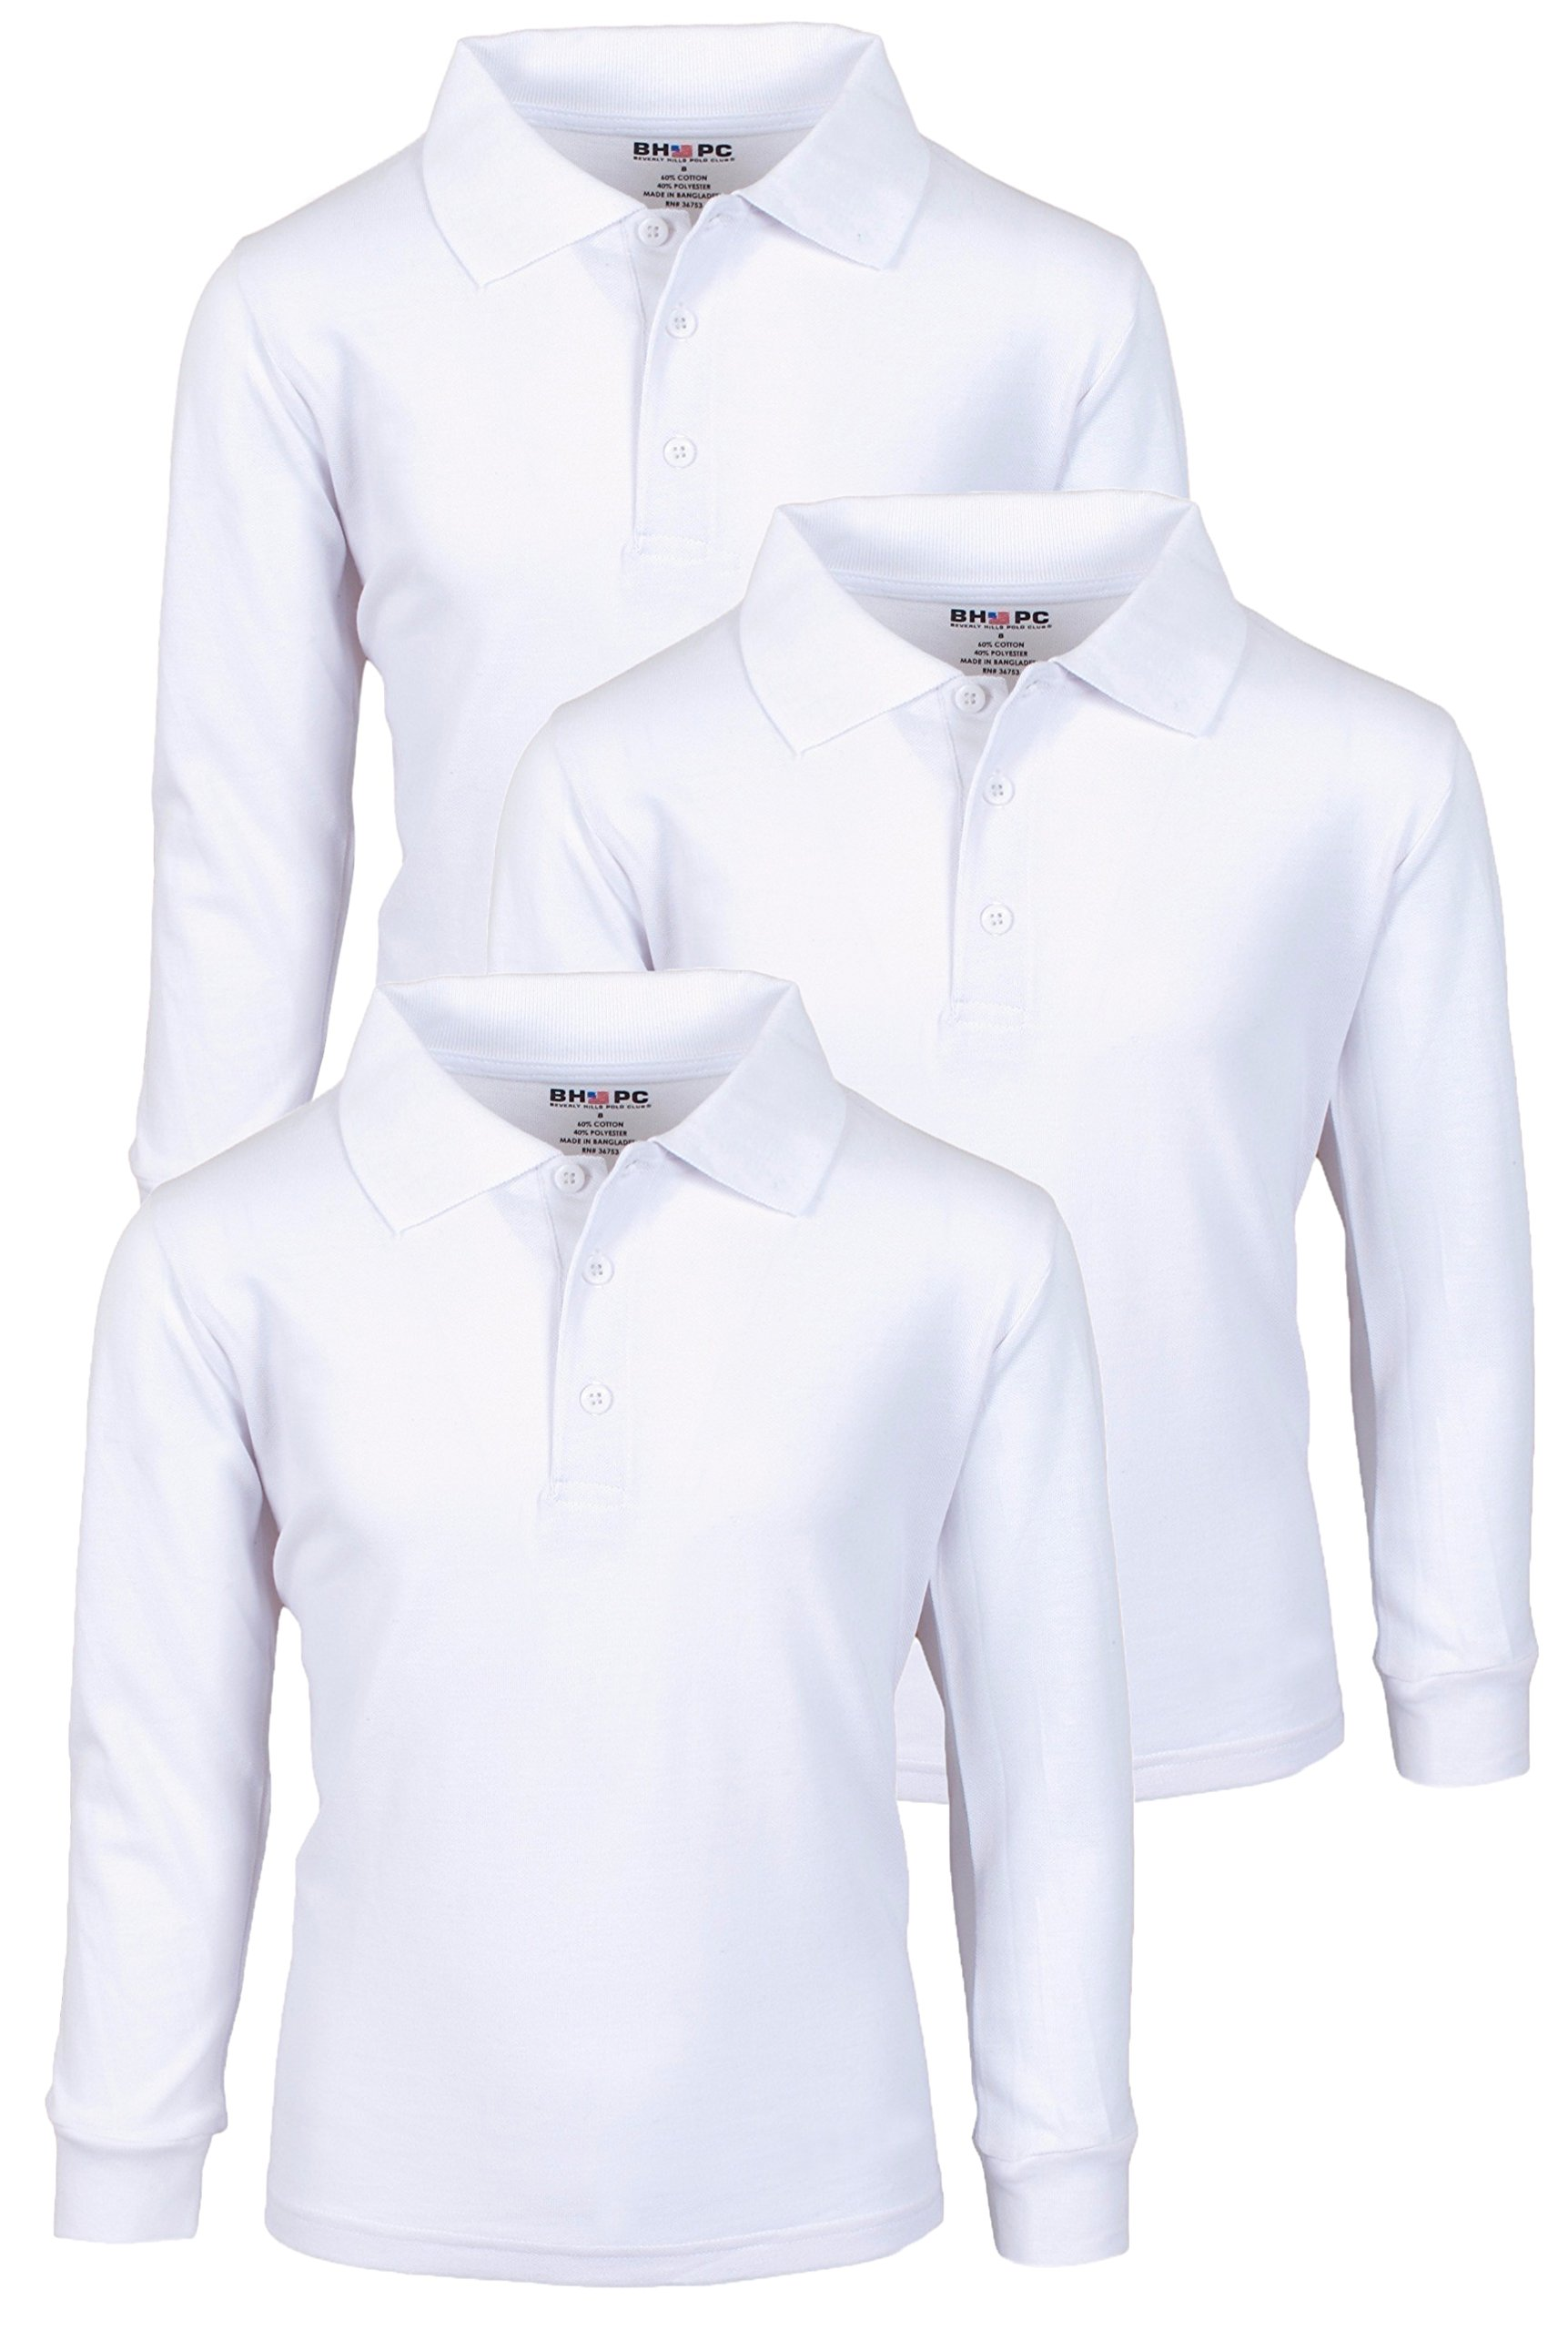 Beverly Hills Polo Club 3 Pack of Boys' Long Sleeve Pique Uniform Polo Shirts, Size 12, White'